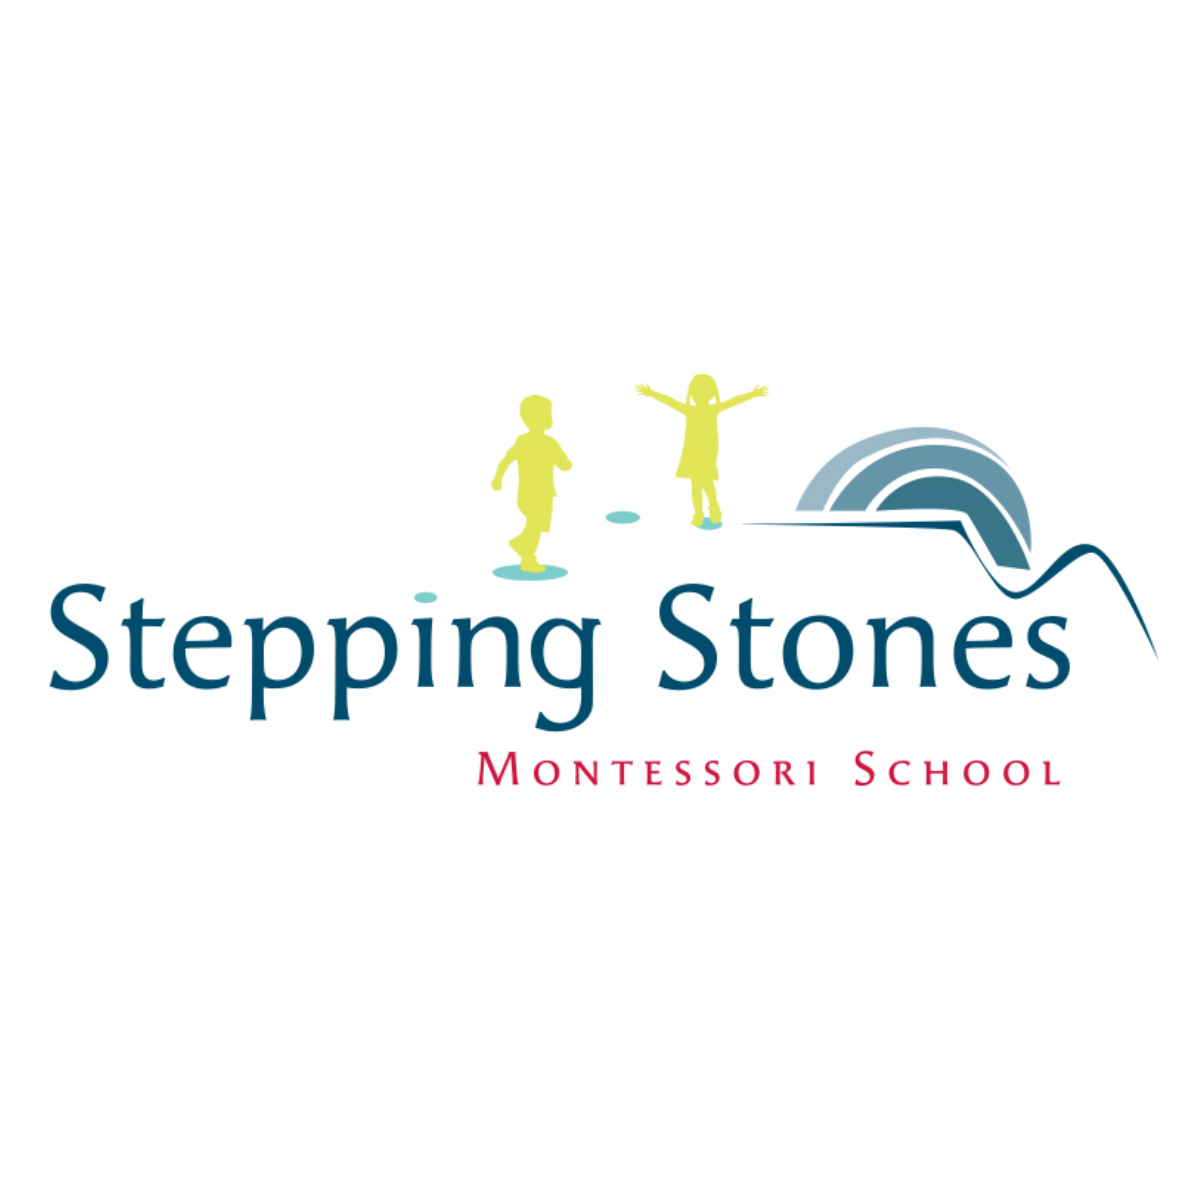 https://execconcierge.co.za/wp-content/uploads/2021/03/steppingstones-mont.png